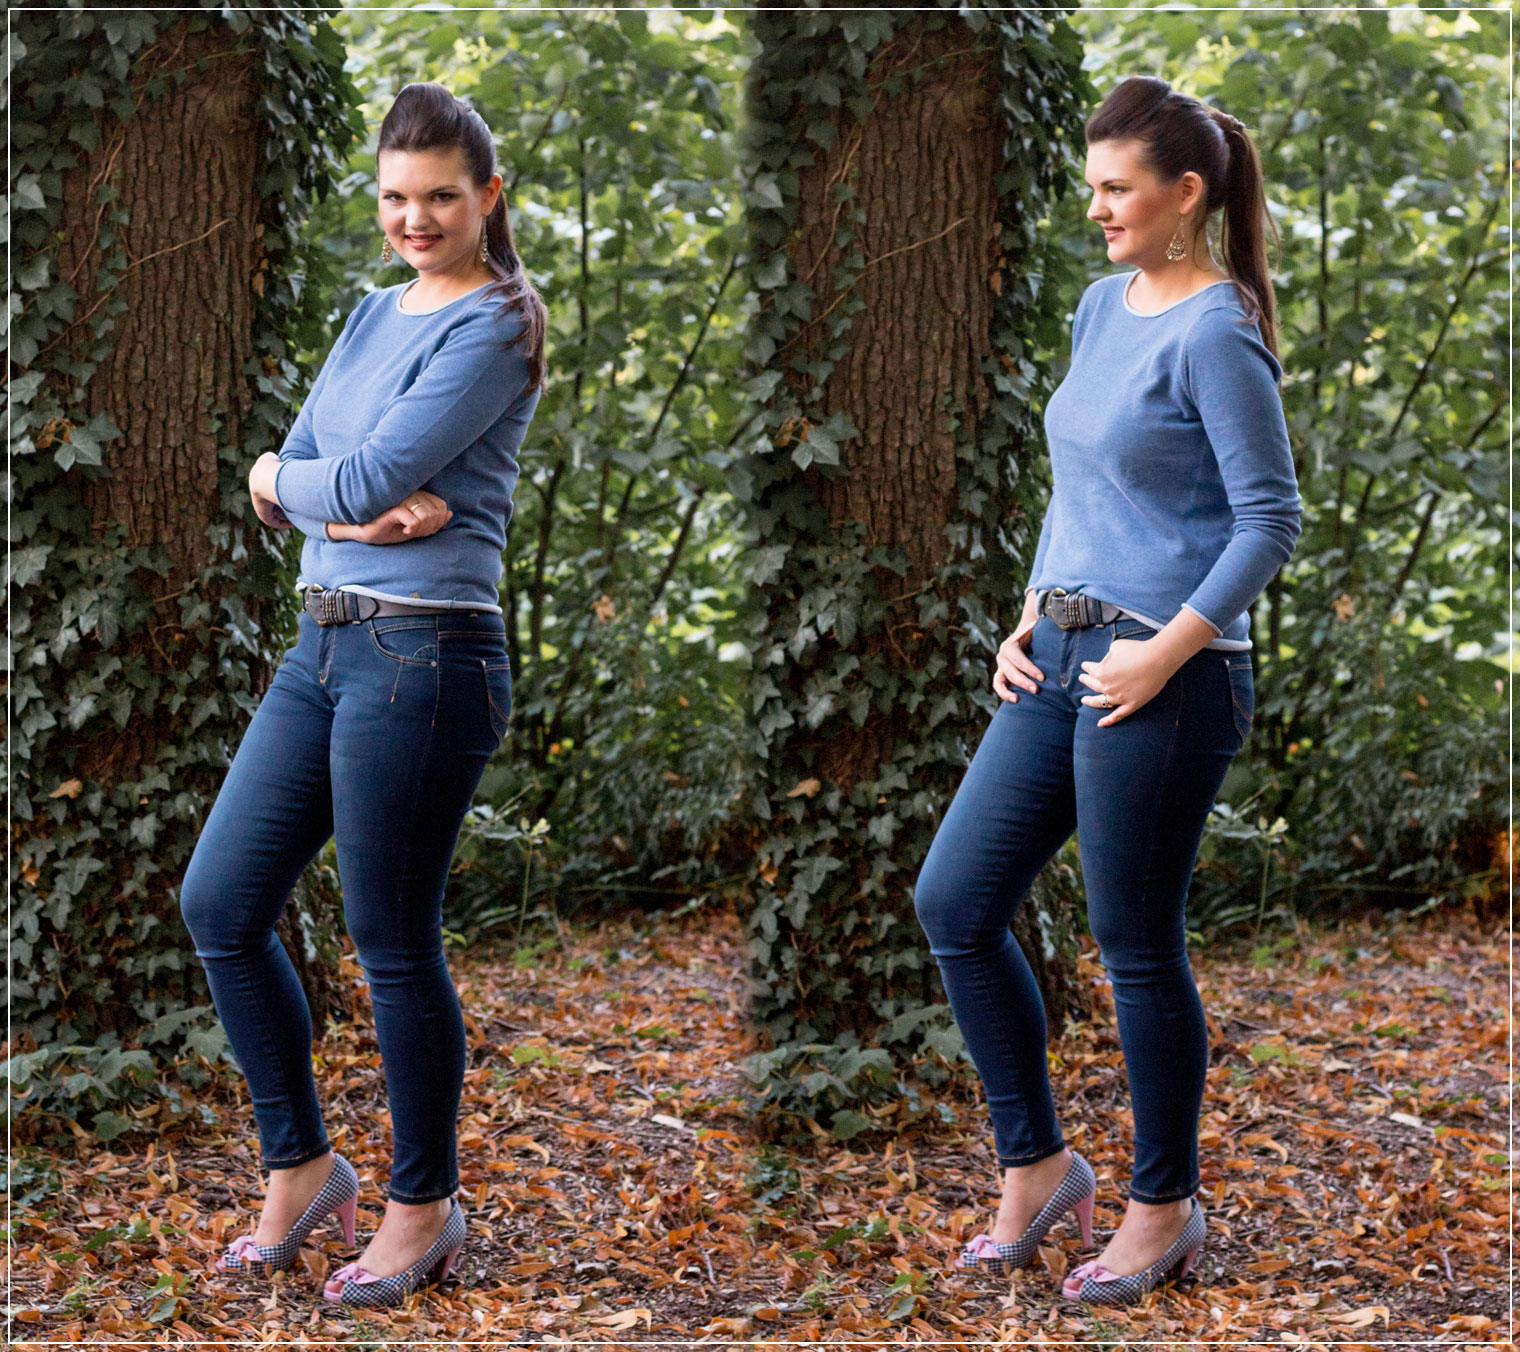 Herbstmode, Herbstoutfit, Jeans Fritz, Herbst Styles, Modeinspiration, Jeanslook, Denimstyle, Styleguide, Outfitinspiration, Modebloggerin, Fashionbloggerin, Modeblog, Ruhrgebiet